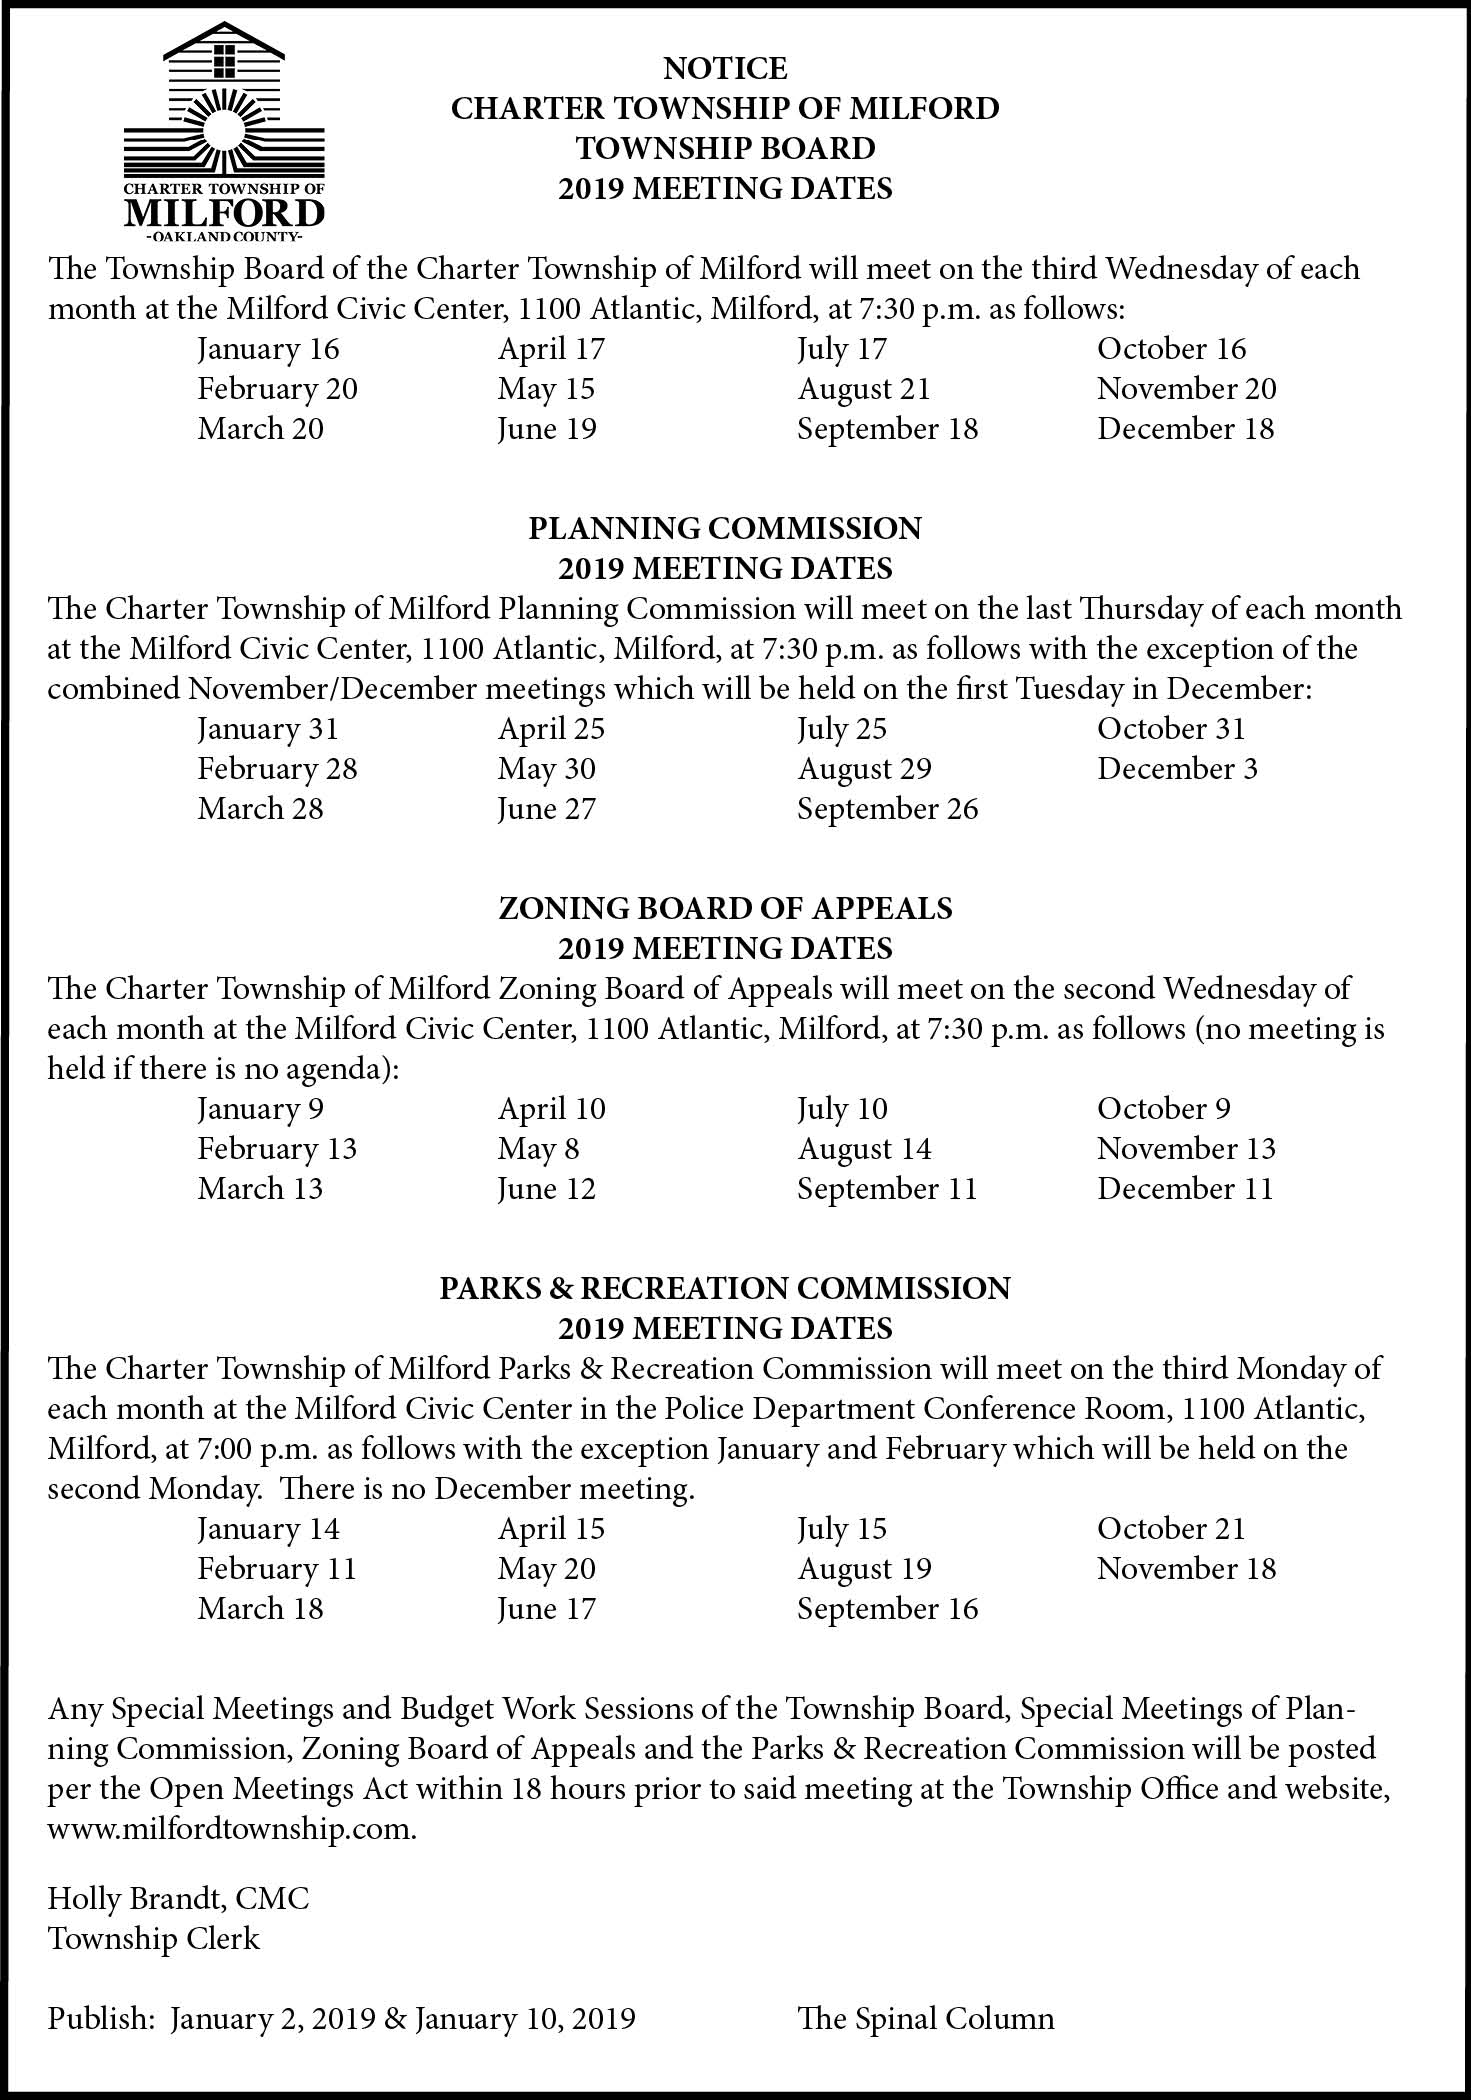 2f9f1cd2a1ec More From Public Notices Legal Go To The Public Notices Legal Section